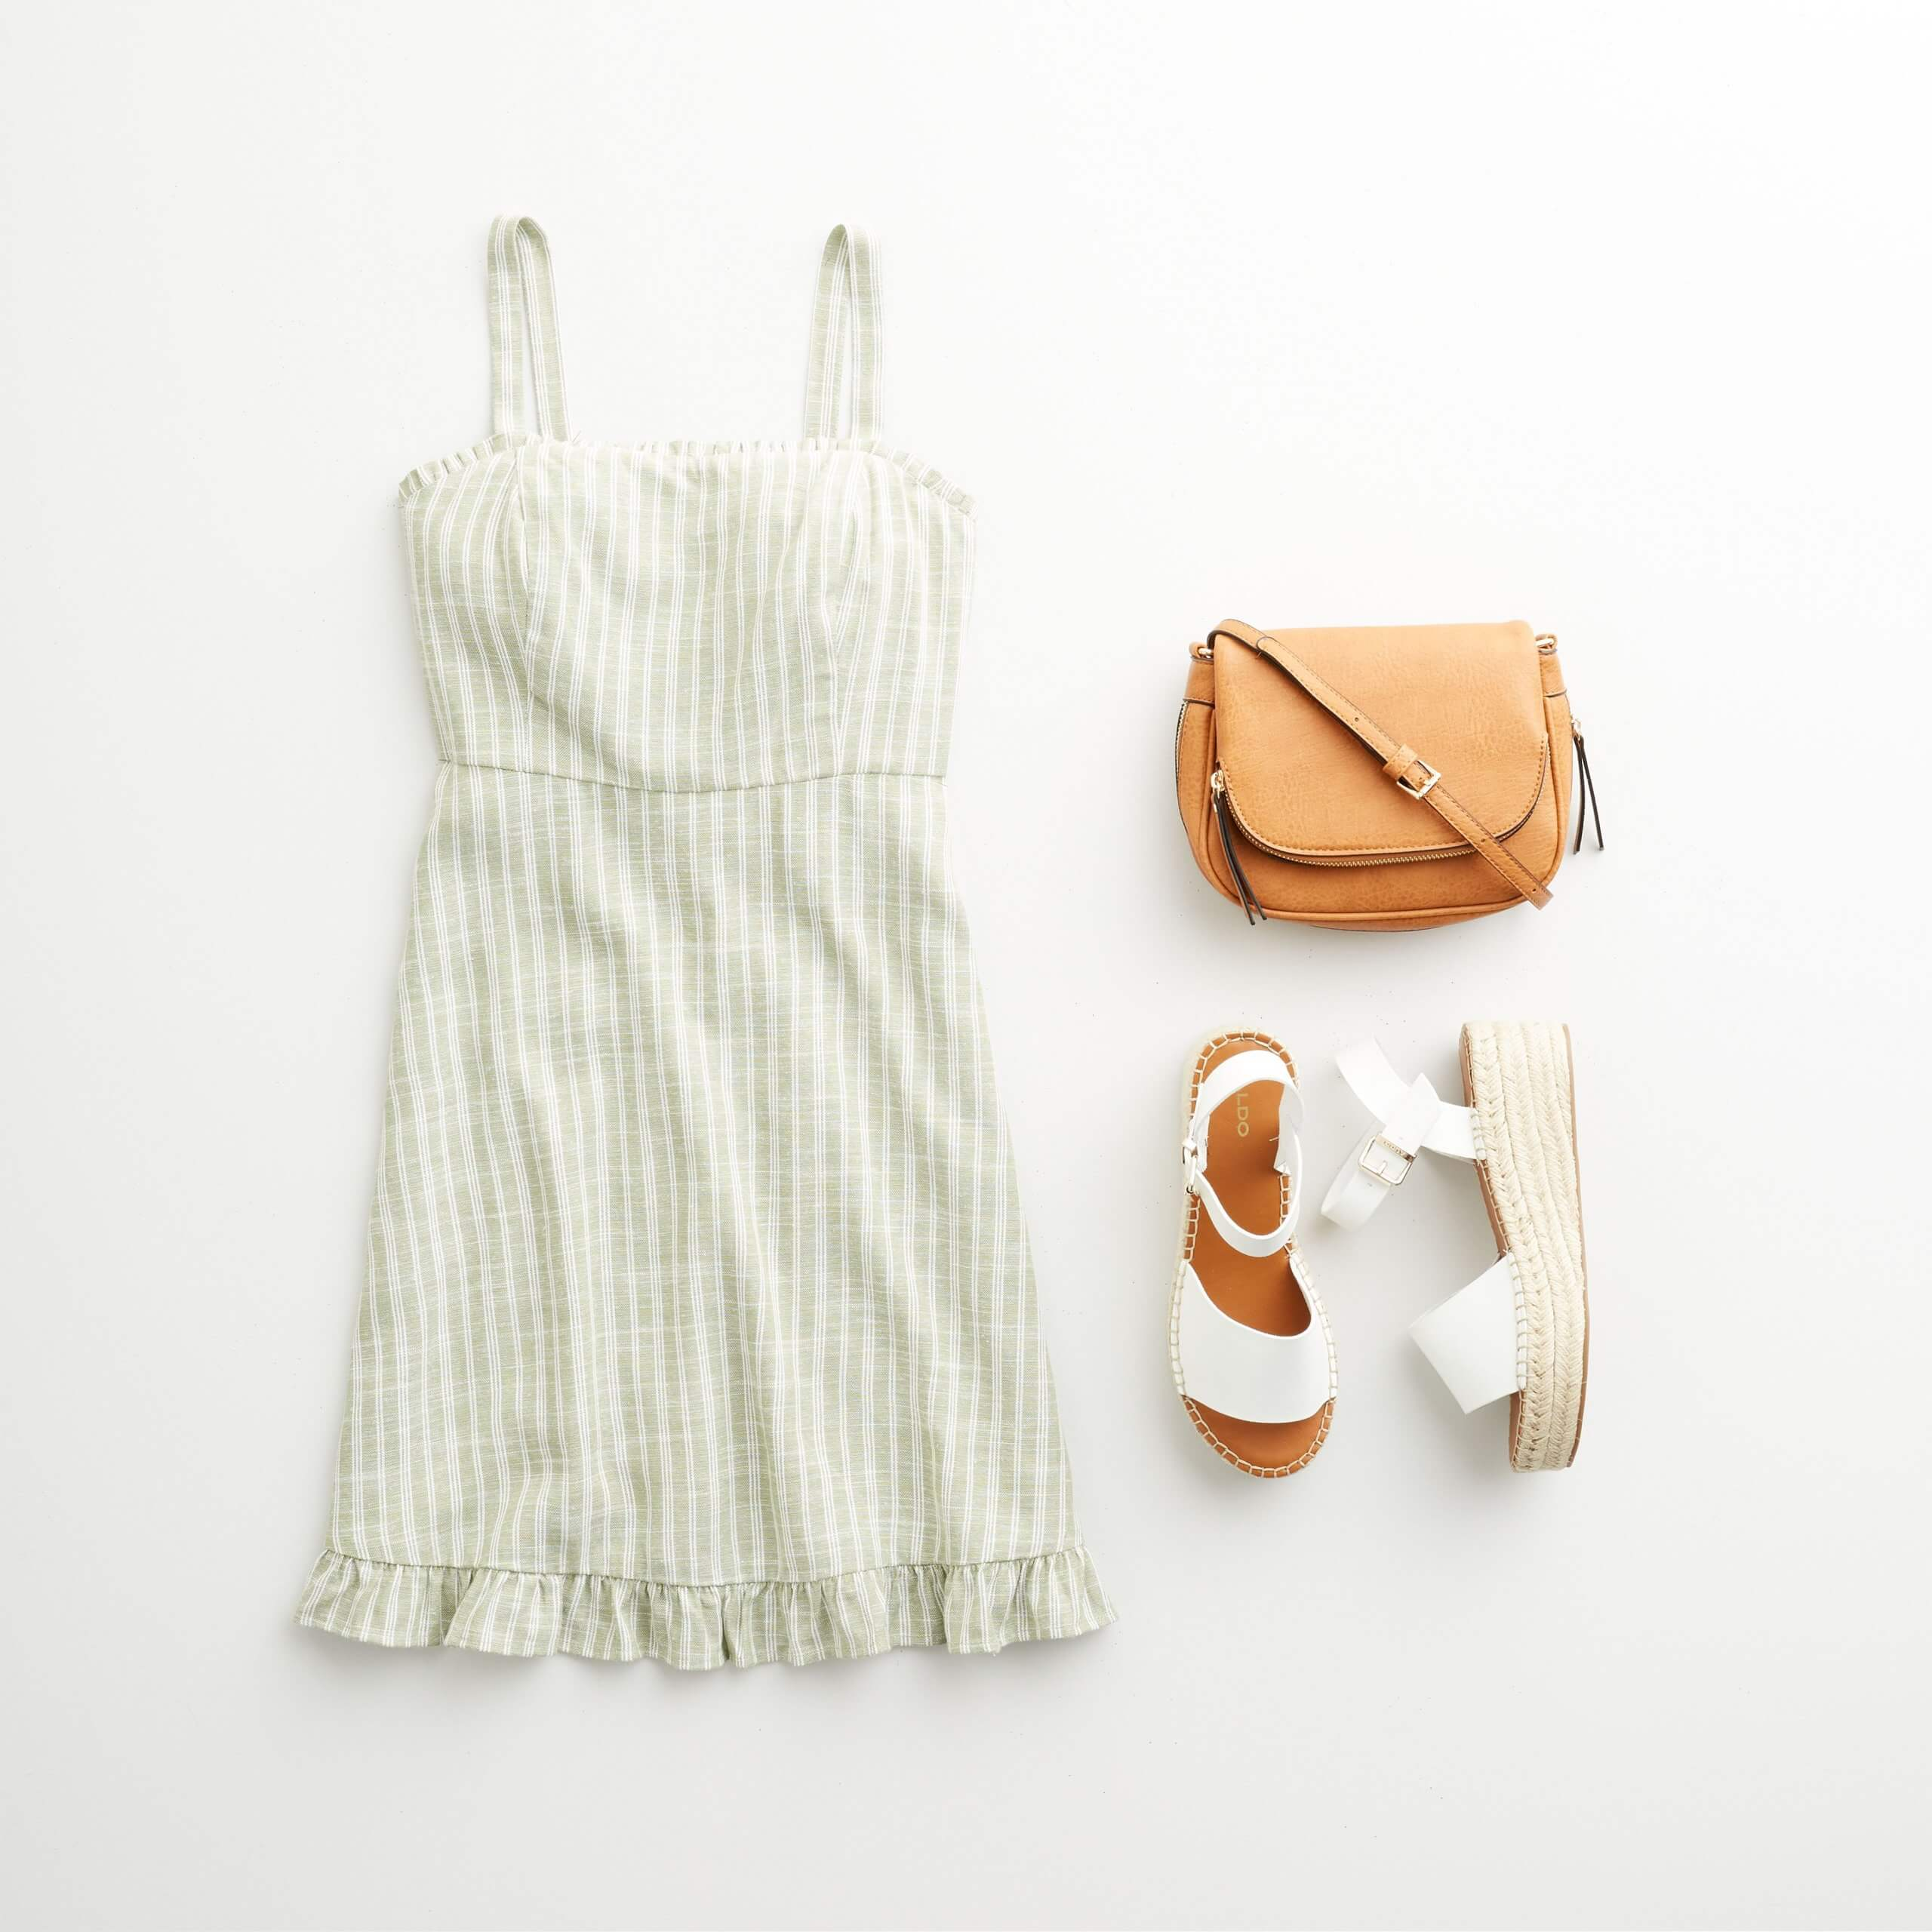 Stitch Fix Women's outfit laydown featuring green and white striped sundress, tan crossbody bag and white wedges.